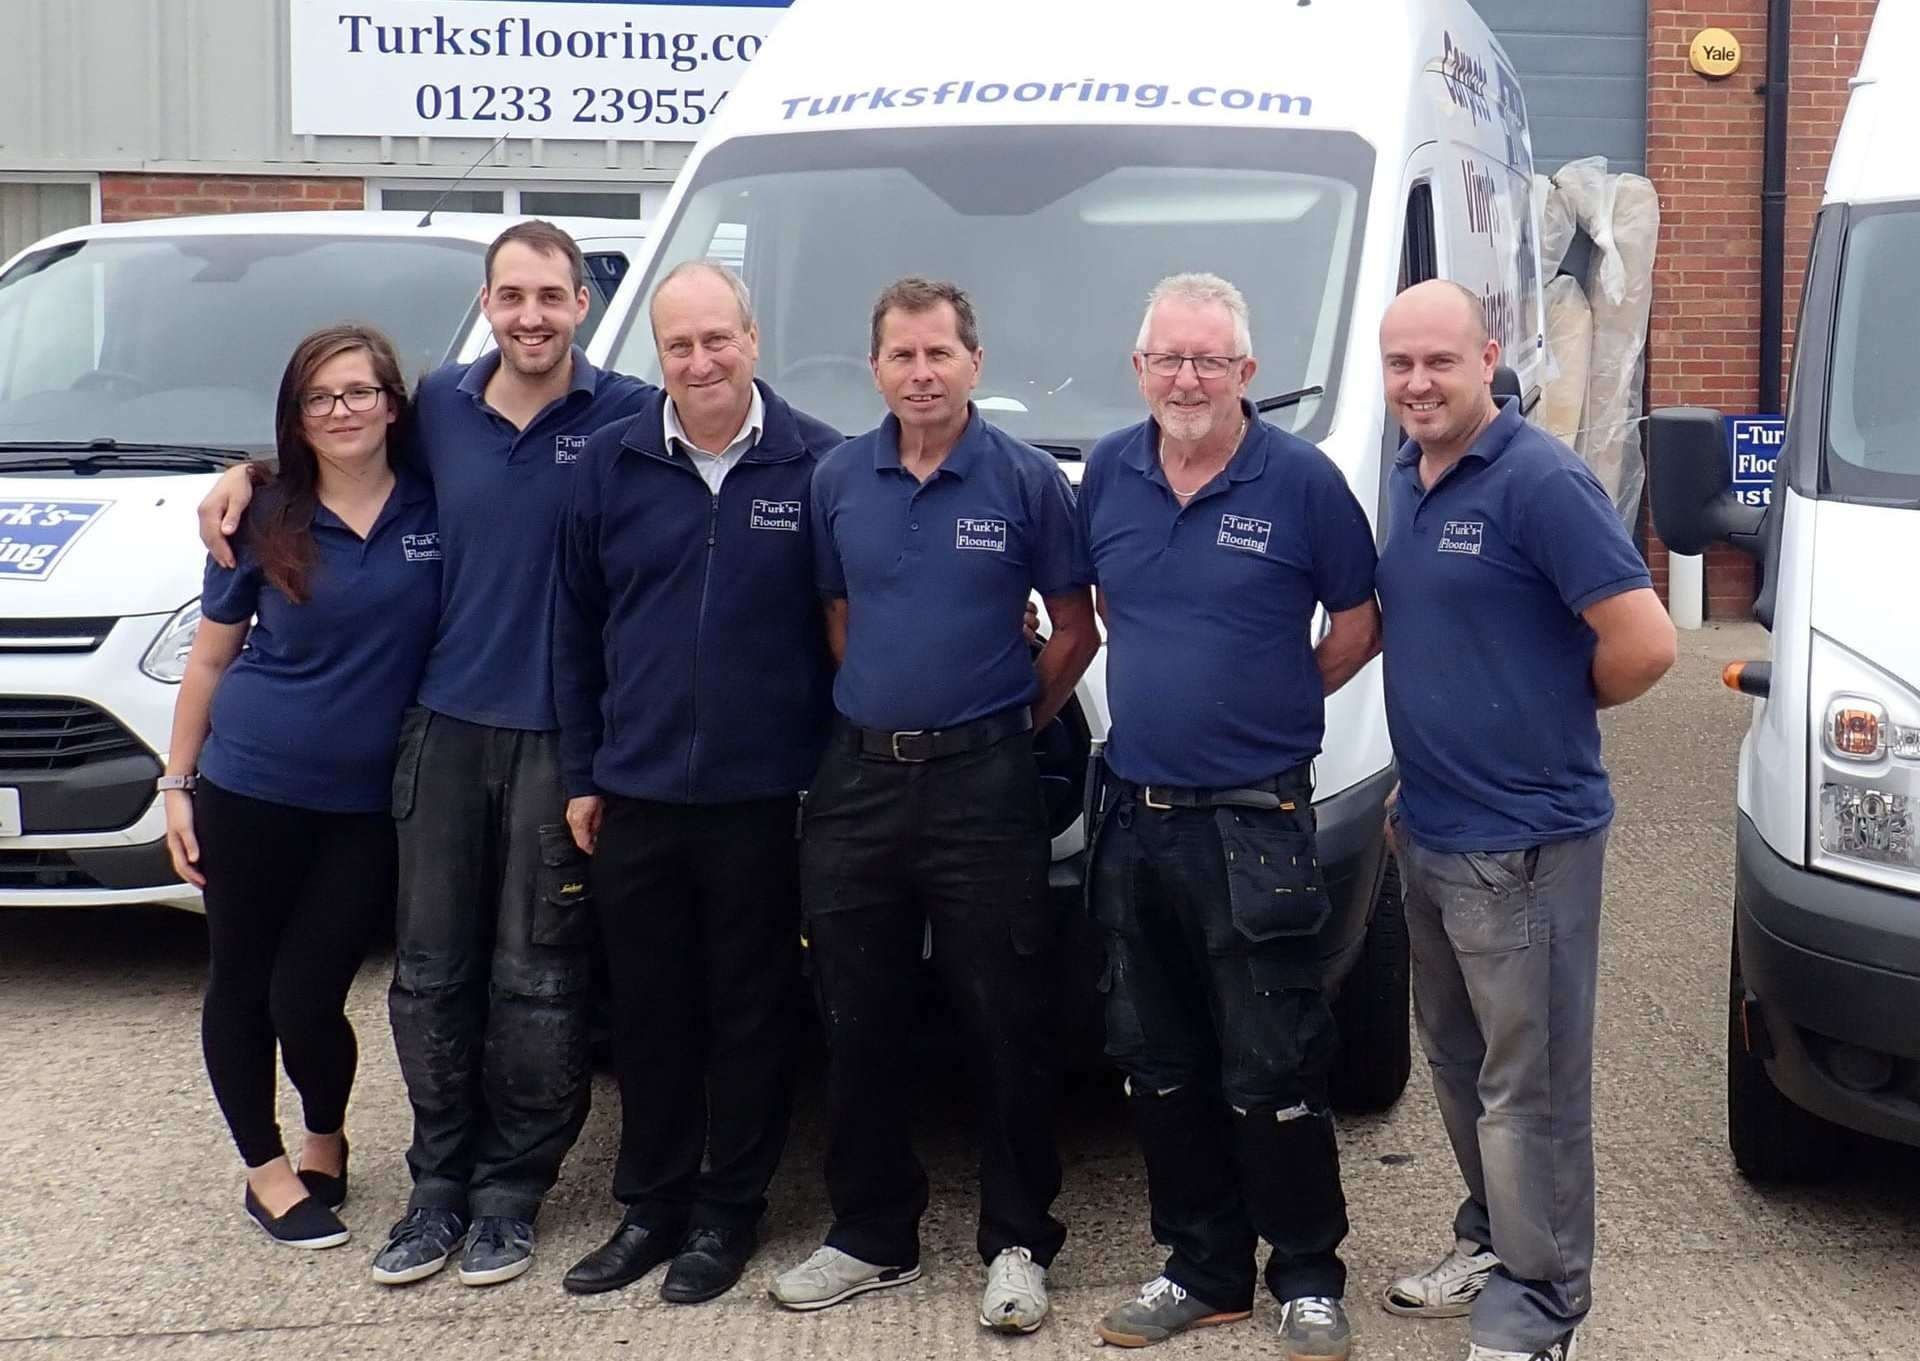 Turk's Flooring are an independent, family run business in Ashford and are on the lookout for a trainee to join their company.